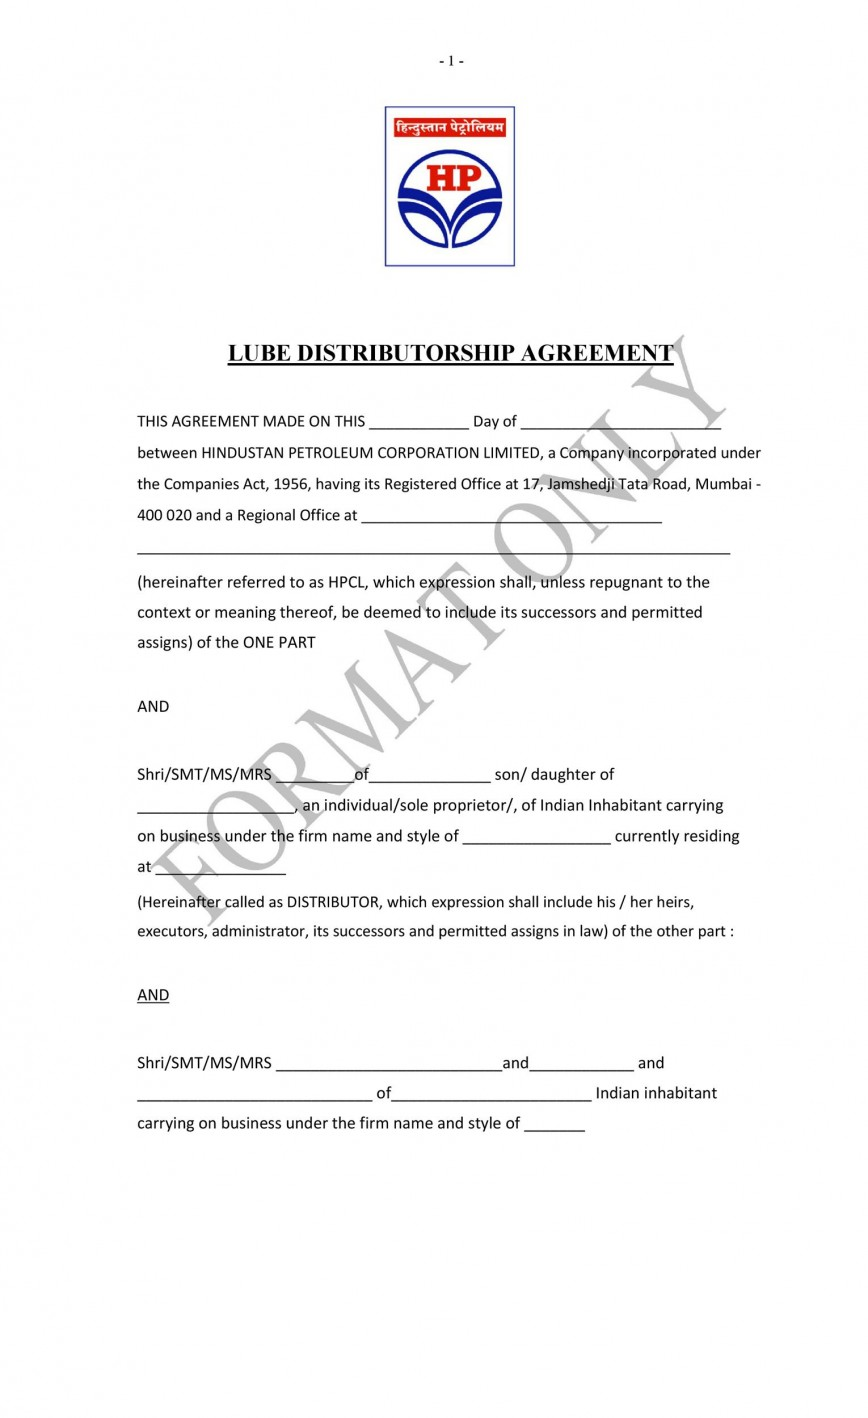 007 Incredible Exclusive Distribution Contract Template High Resolution  Sole Distributor Agreement Non Free868